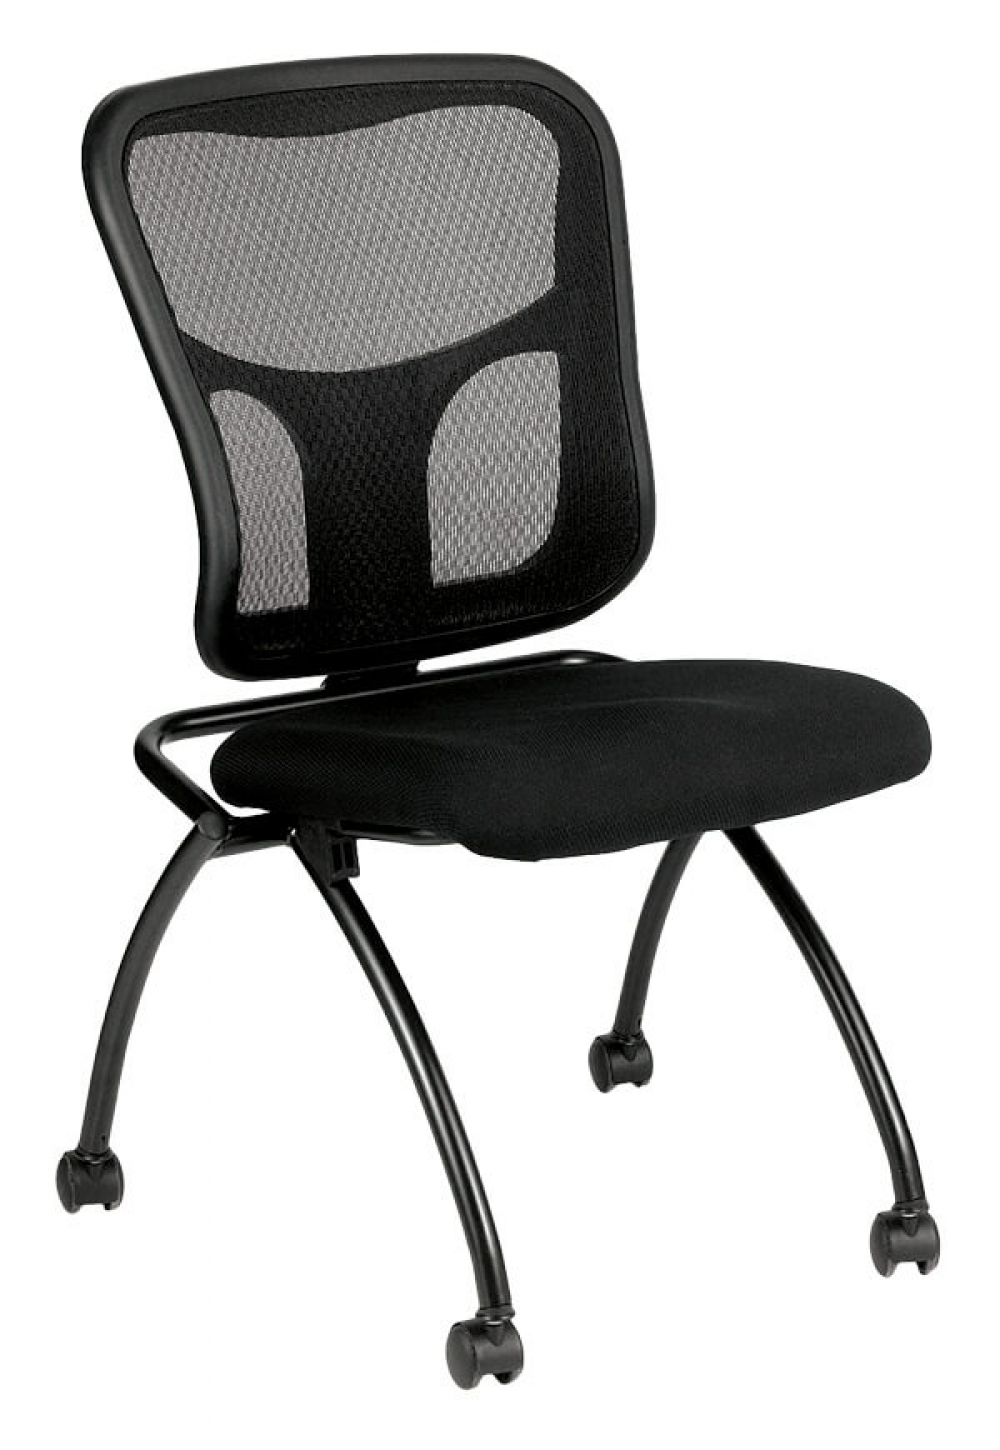 office-furniture-chairs-visitors-chair.jpg